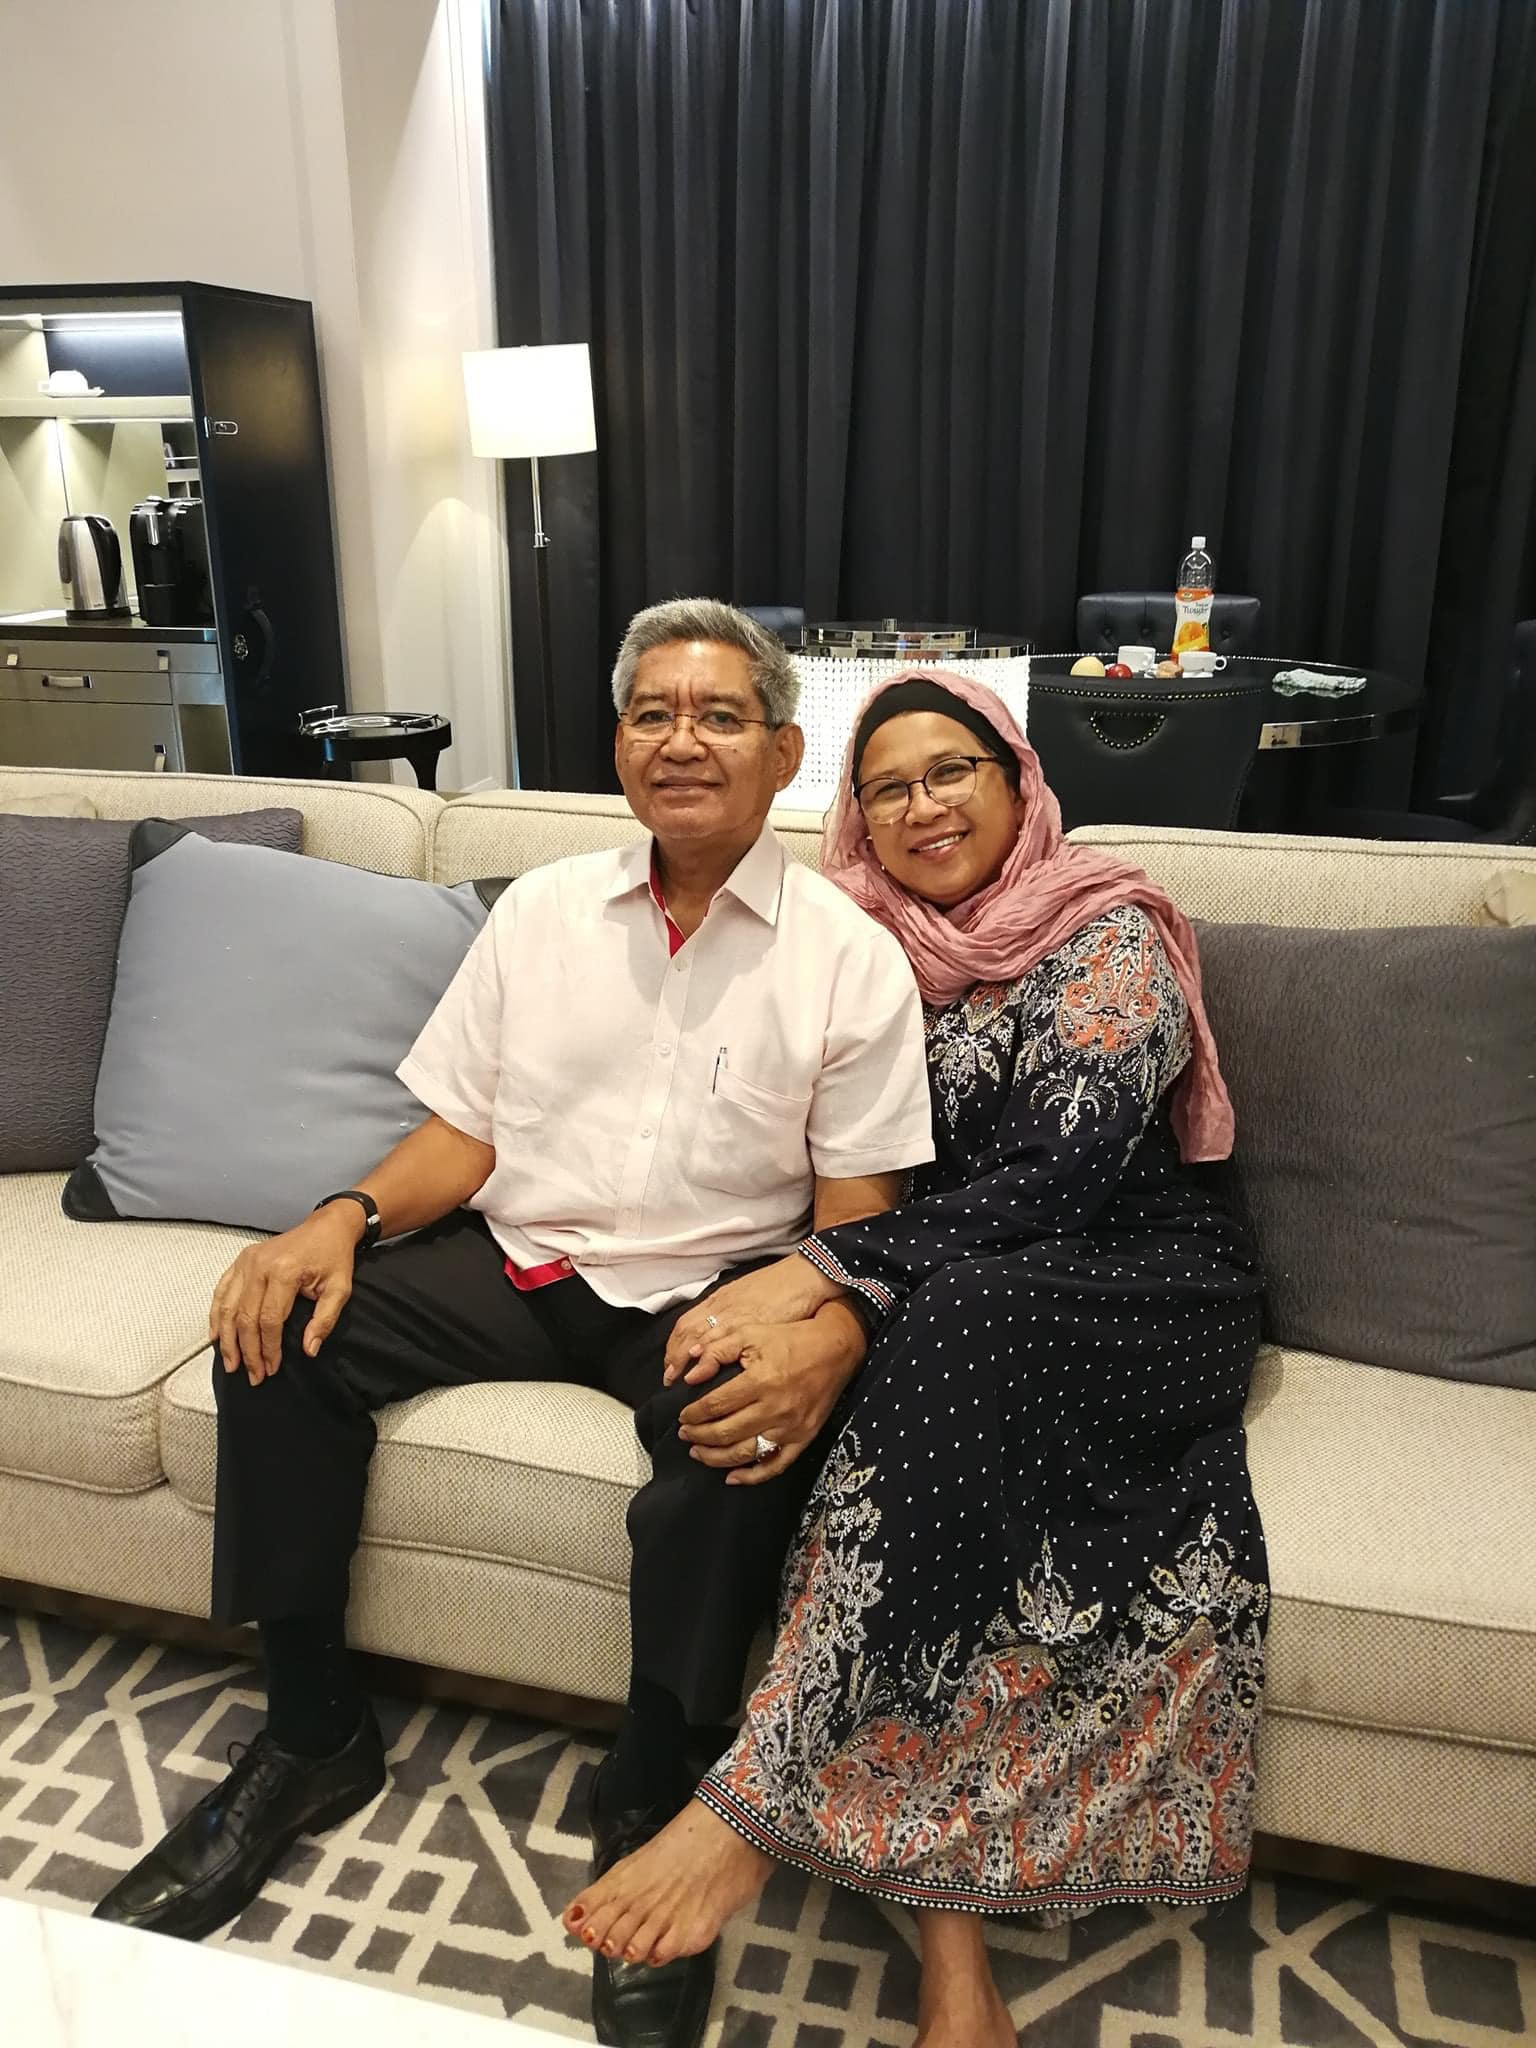 Aziz M Yusof and his wife sit on a sofa. She has her hand on his lap. They are smiling. Aziz has grey hair and wears rimless glasses.